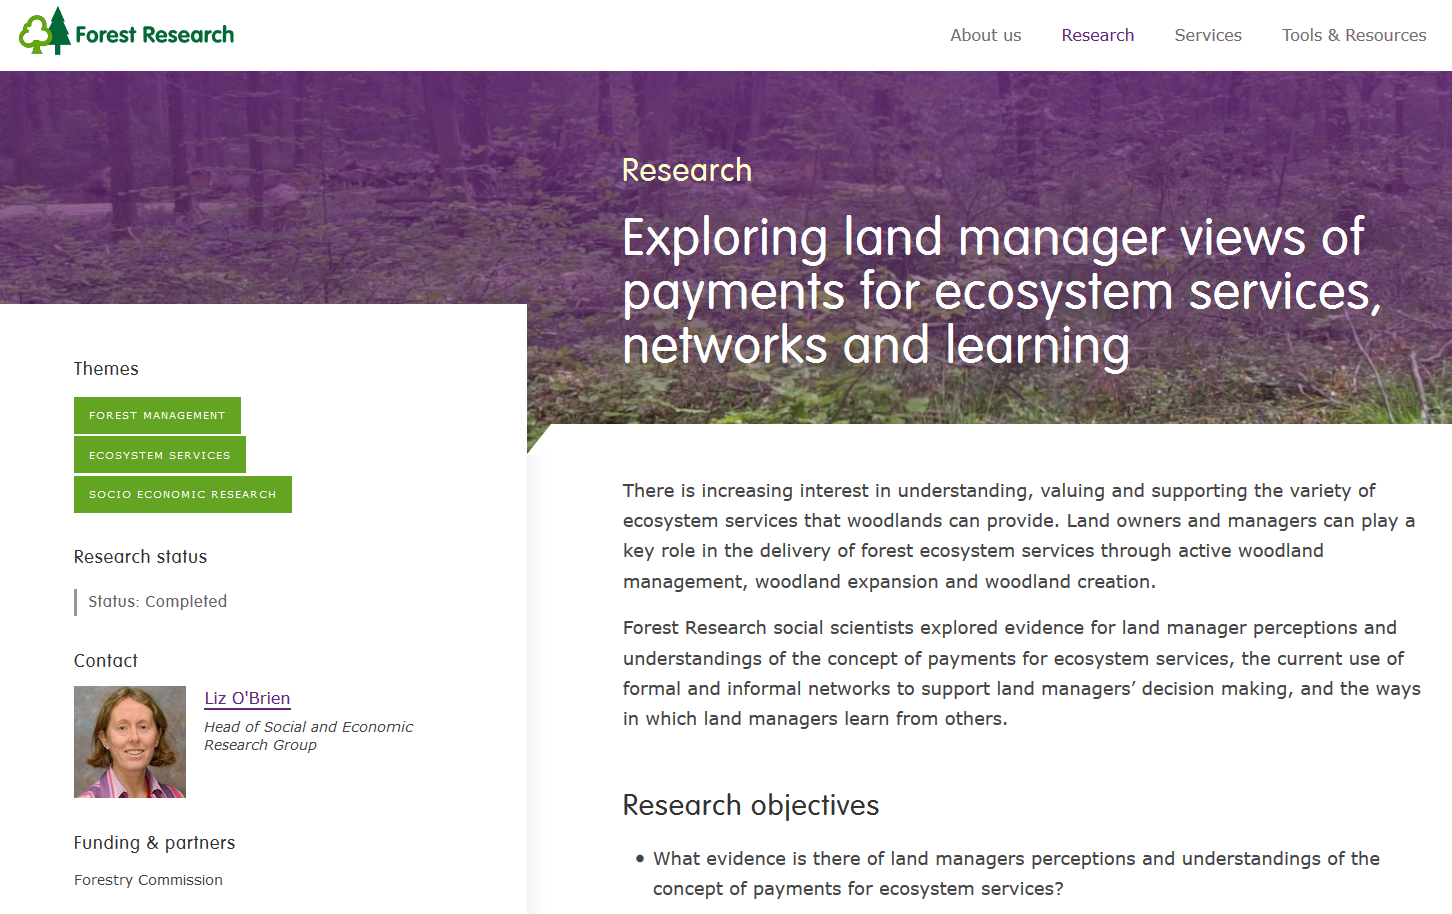 Exploring land manager views of payments for ecosystem services, networks and learning